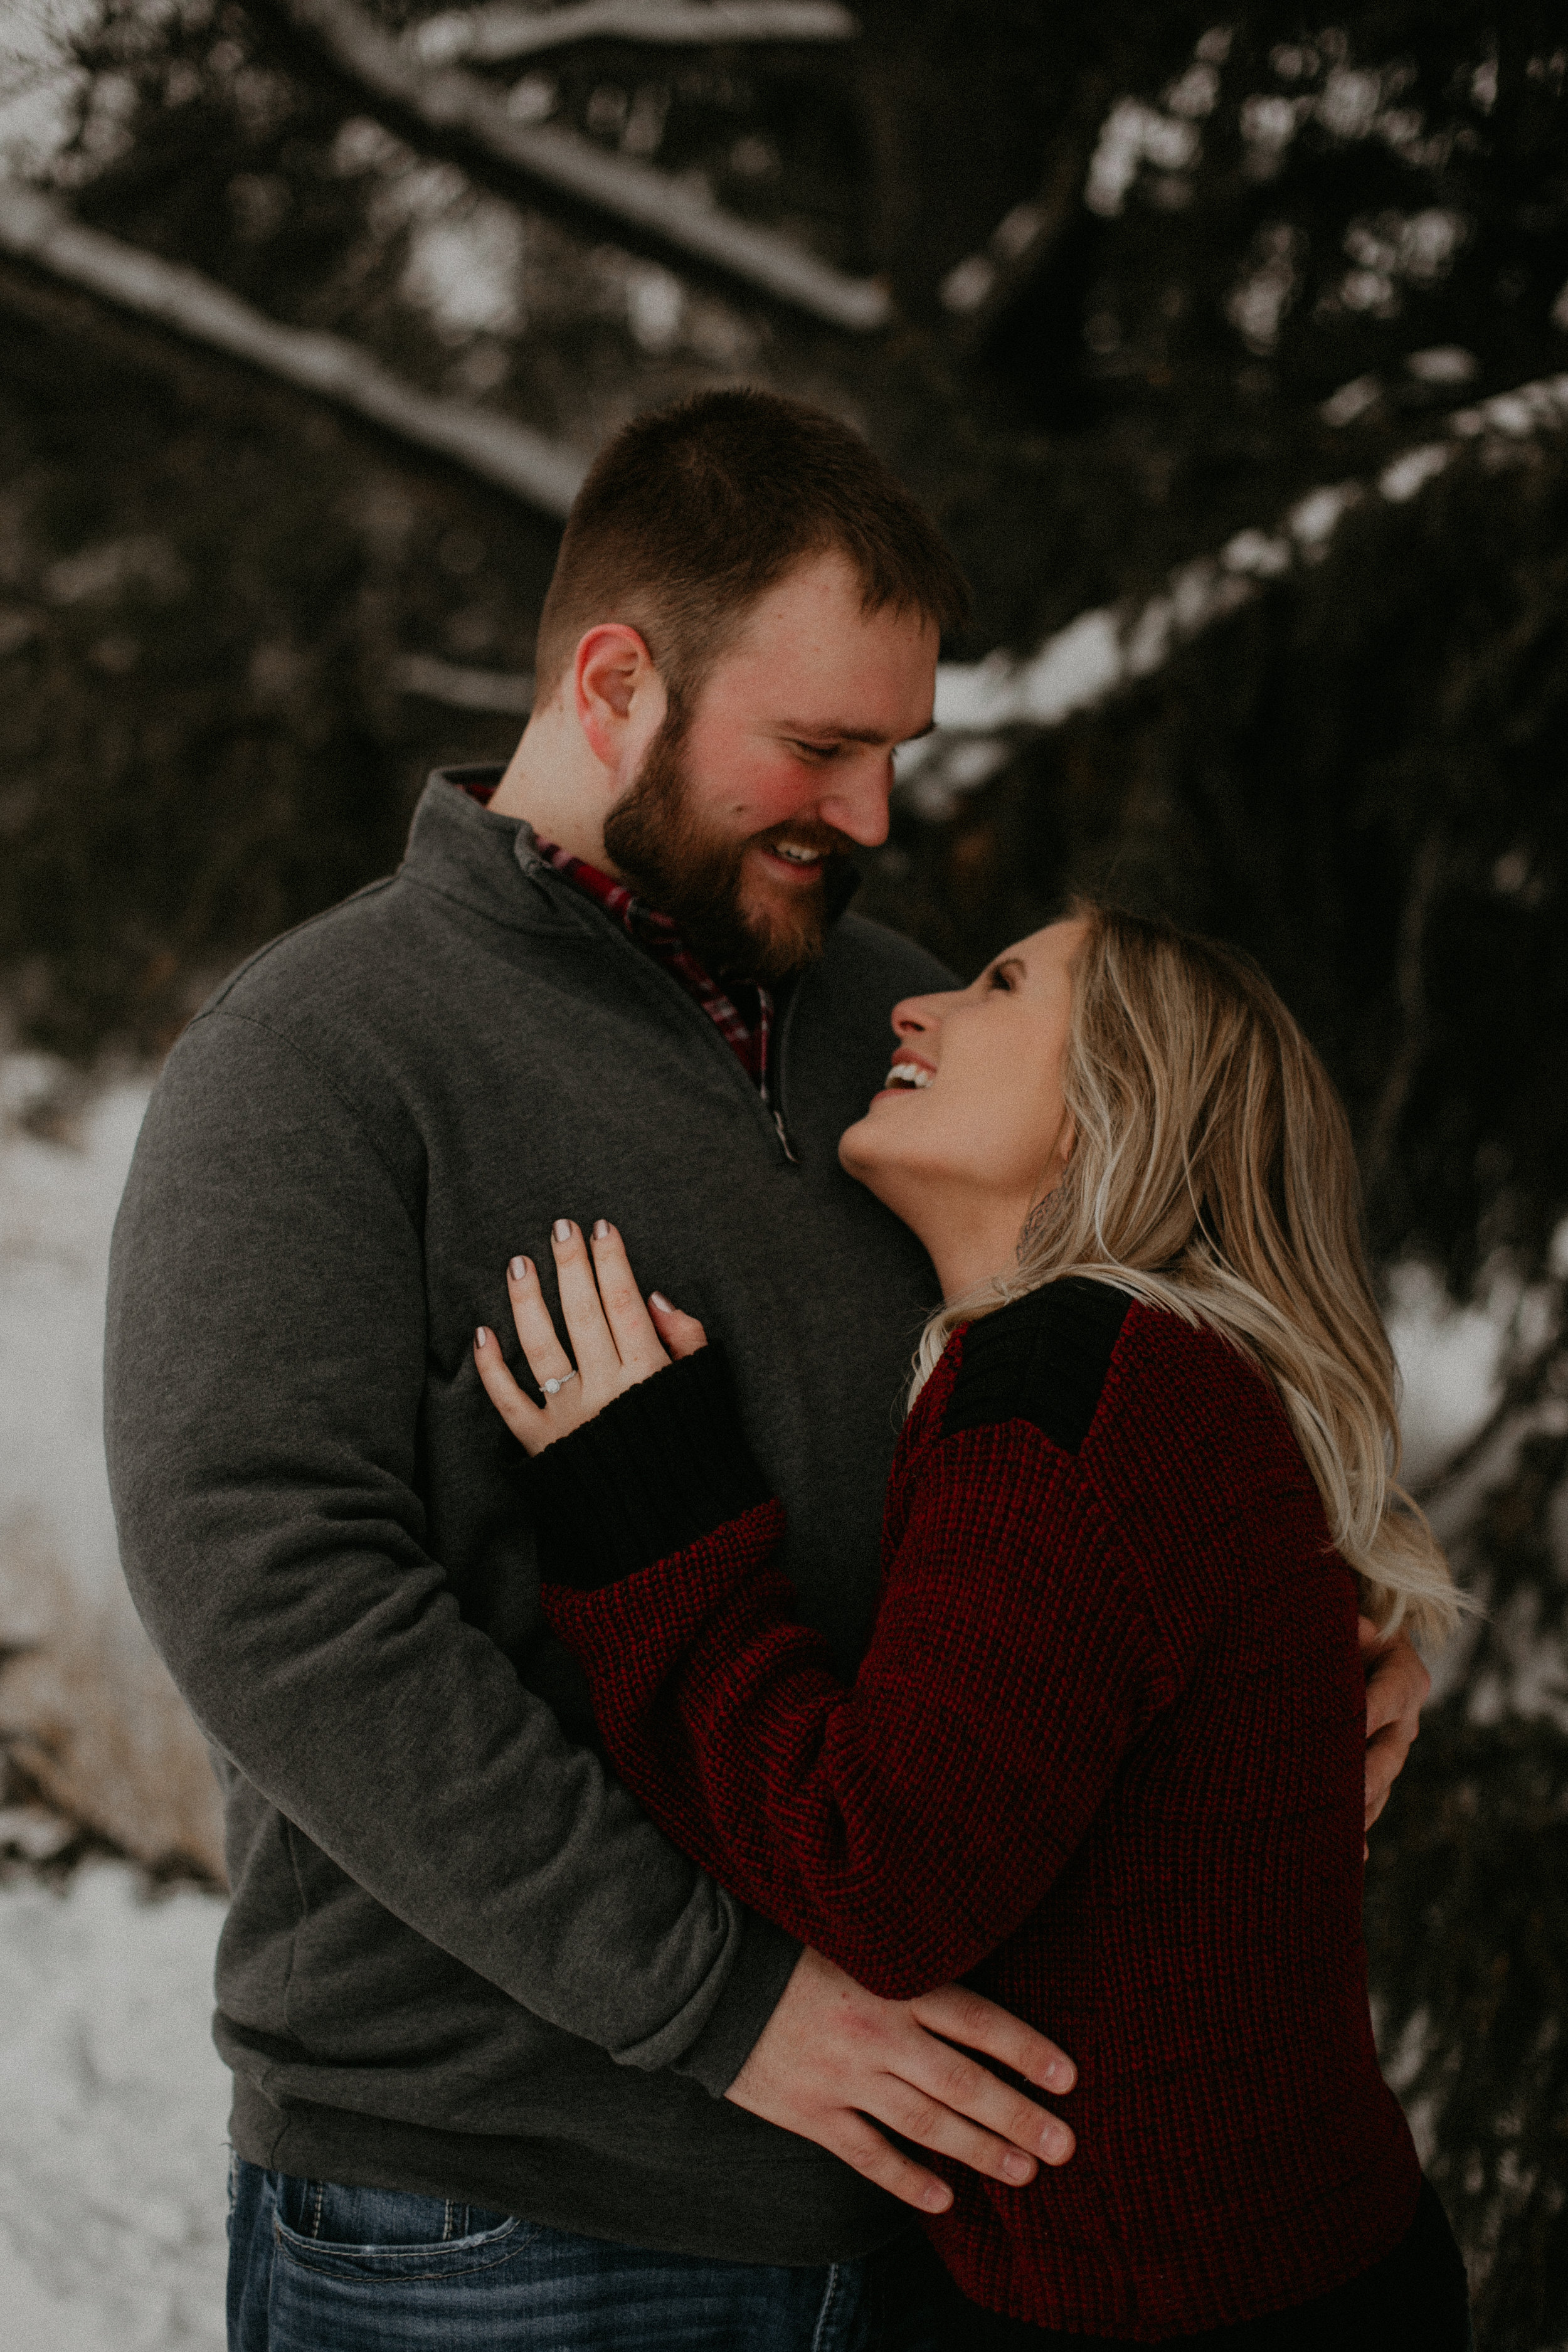 Athens WI couple snuggles in the snow during a winter engagement session